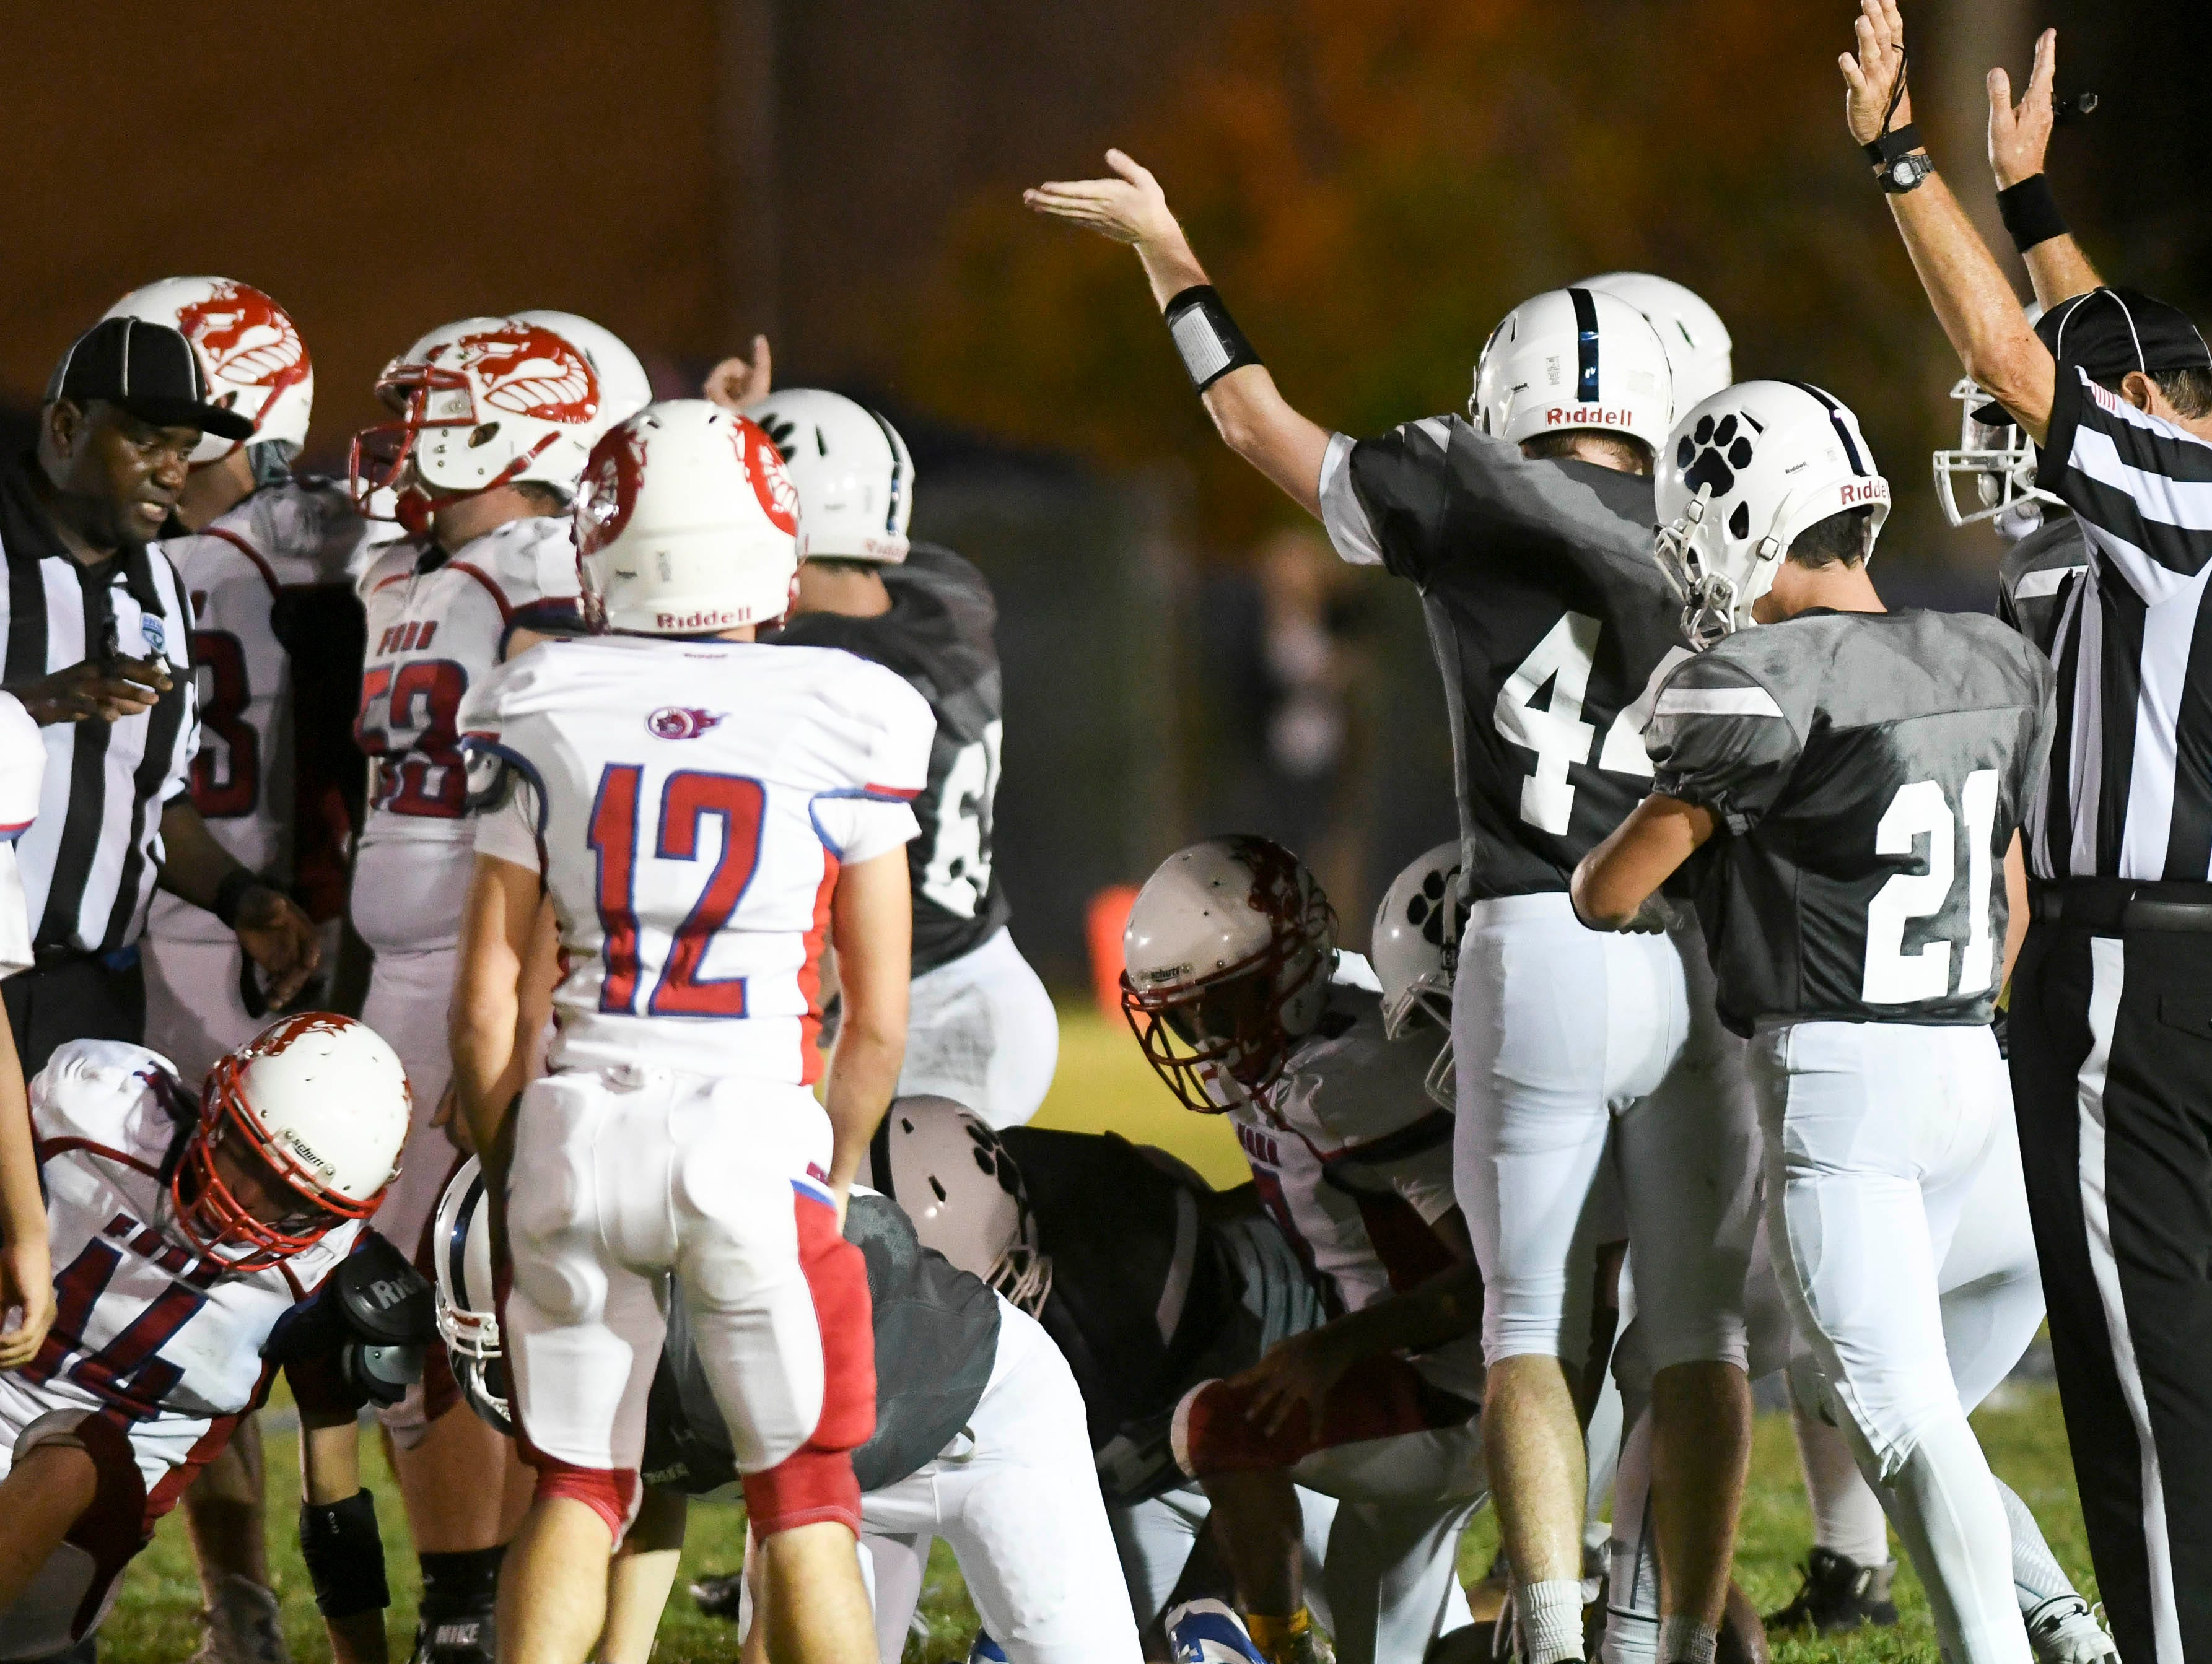 Merritt Island Christian players signal they've recovered a Florida School for the Deaf fumble during Thursday's game.